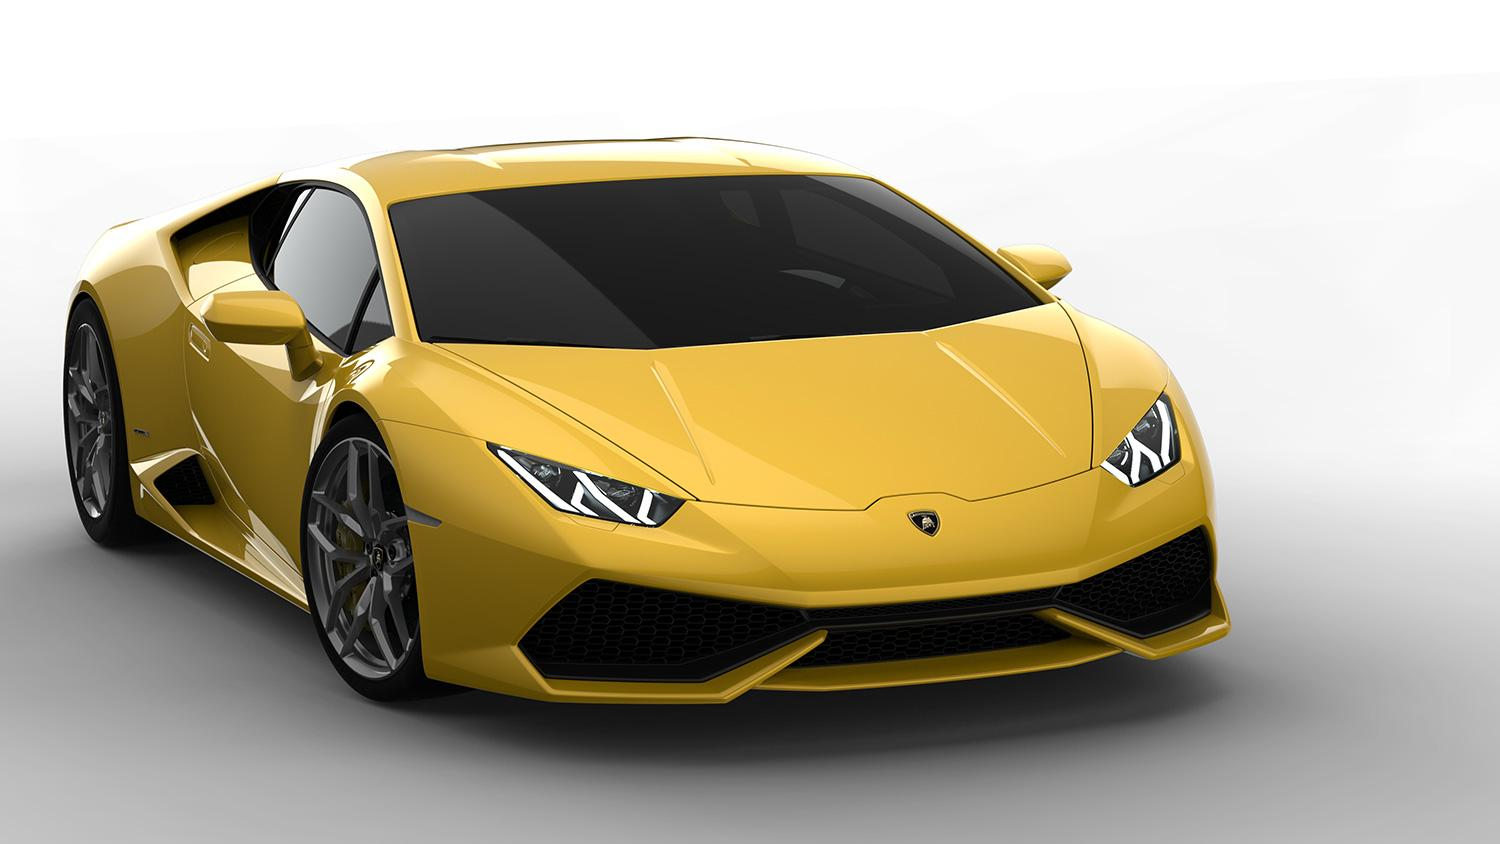 lamborghini hurac n attracts 700 orders in its first month on sale digital. Black Bedroom Furniture Sets. Home Design Ideas